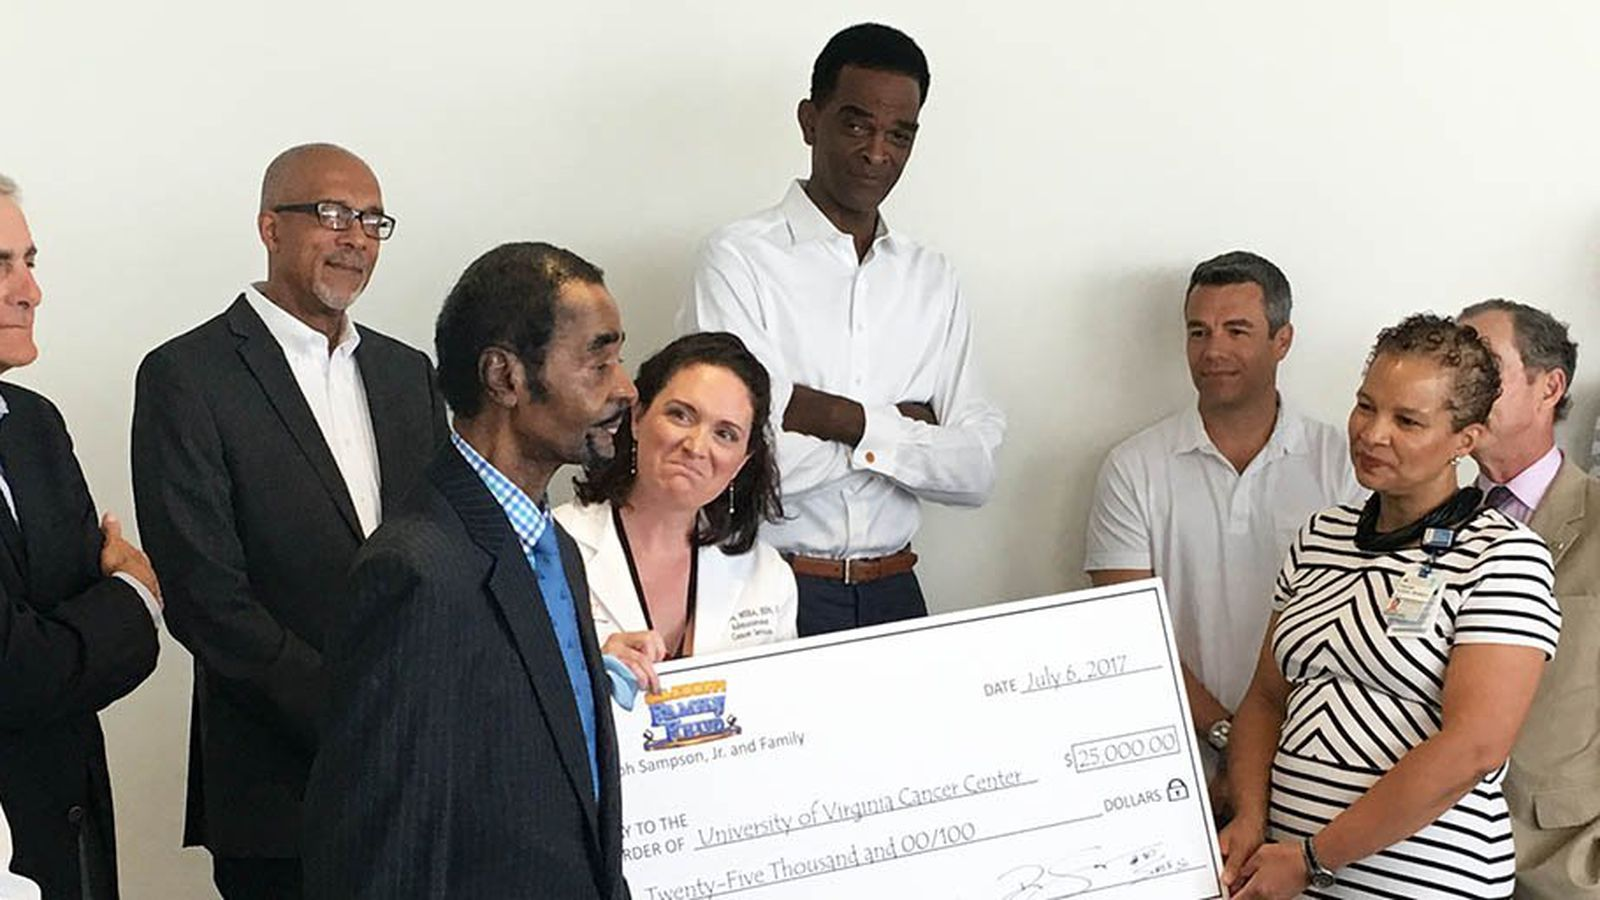 Legendary Ralph Sampson donates his Family Feud winnings to UVA